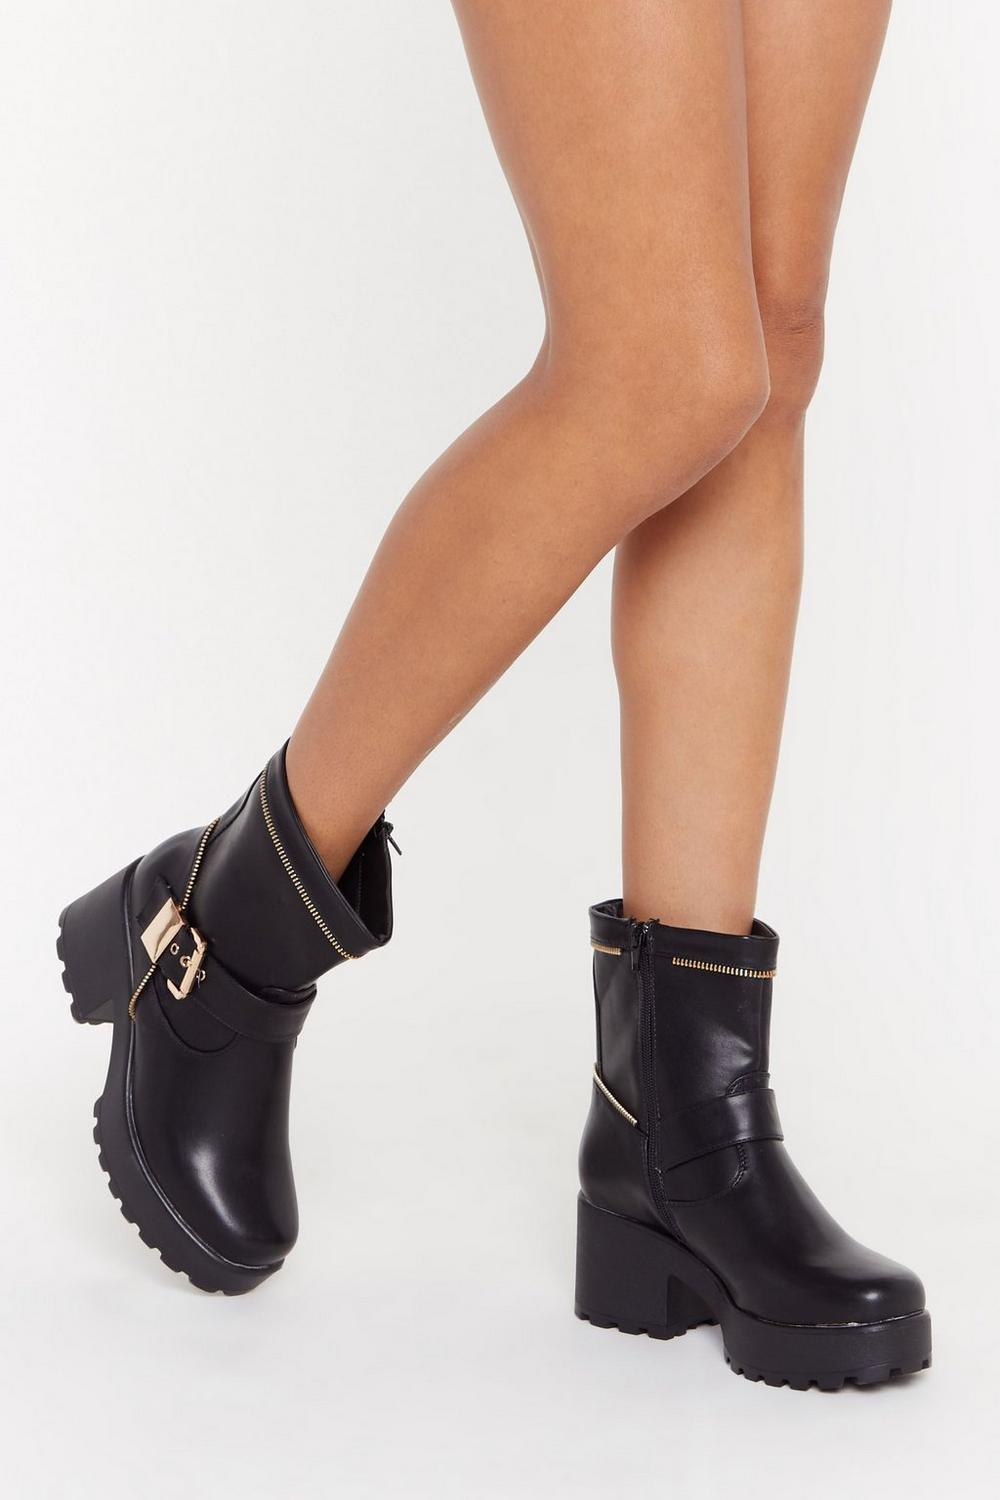 93e5f5bf7b Zip Town Faux Leather Biker Boots | Shop Clothes at Nasty Gal!